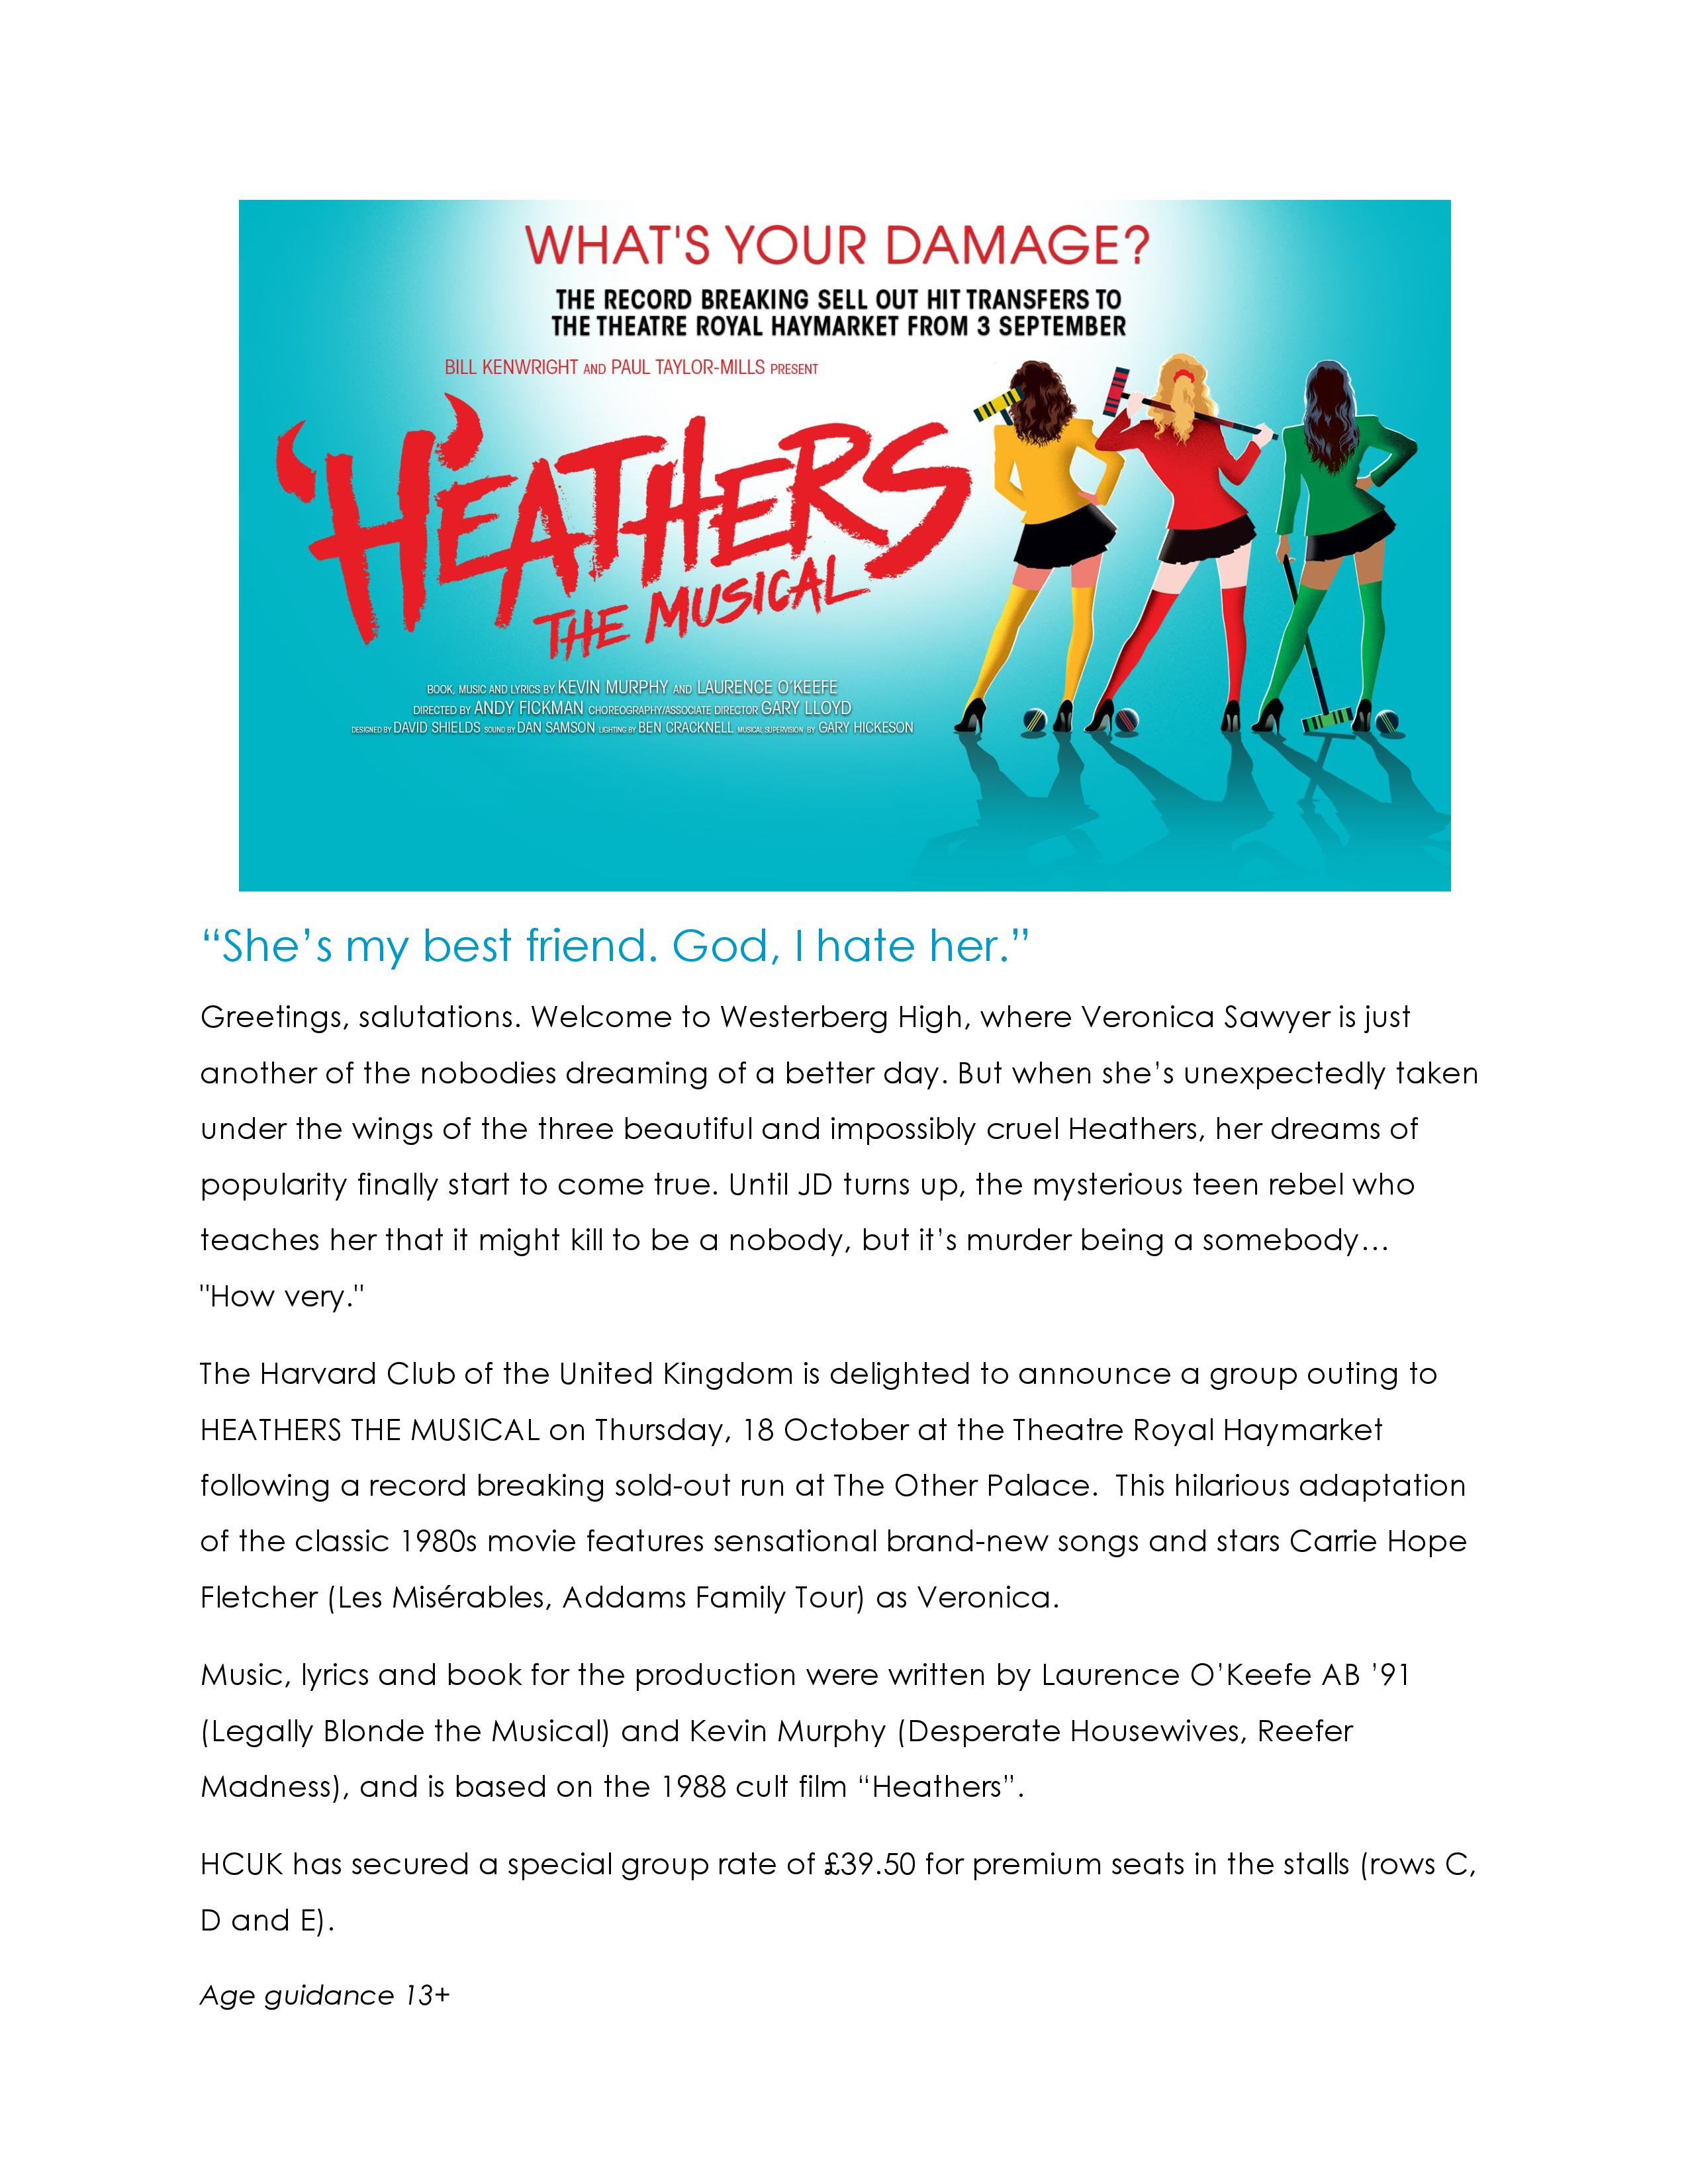 heathers-18-oct-18-page-001